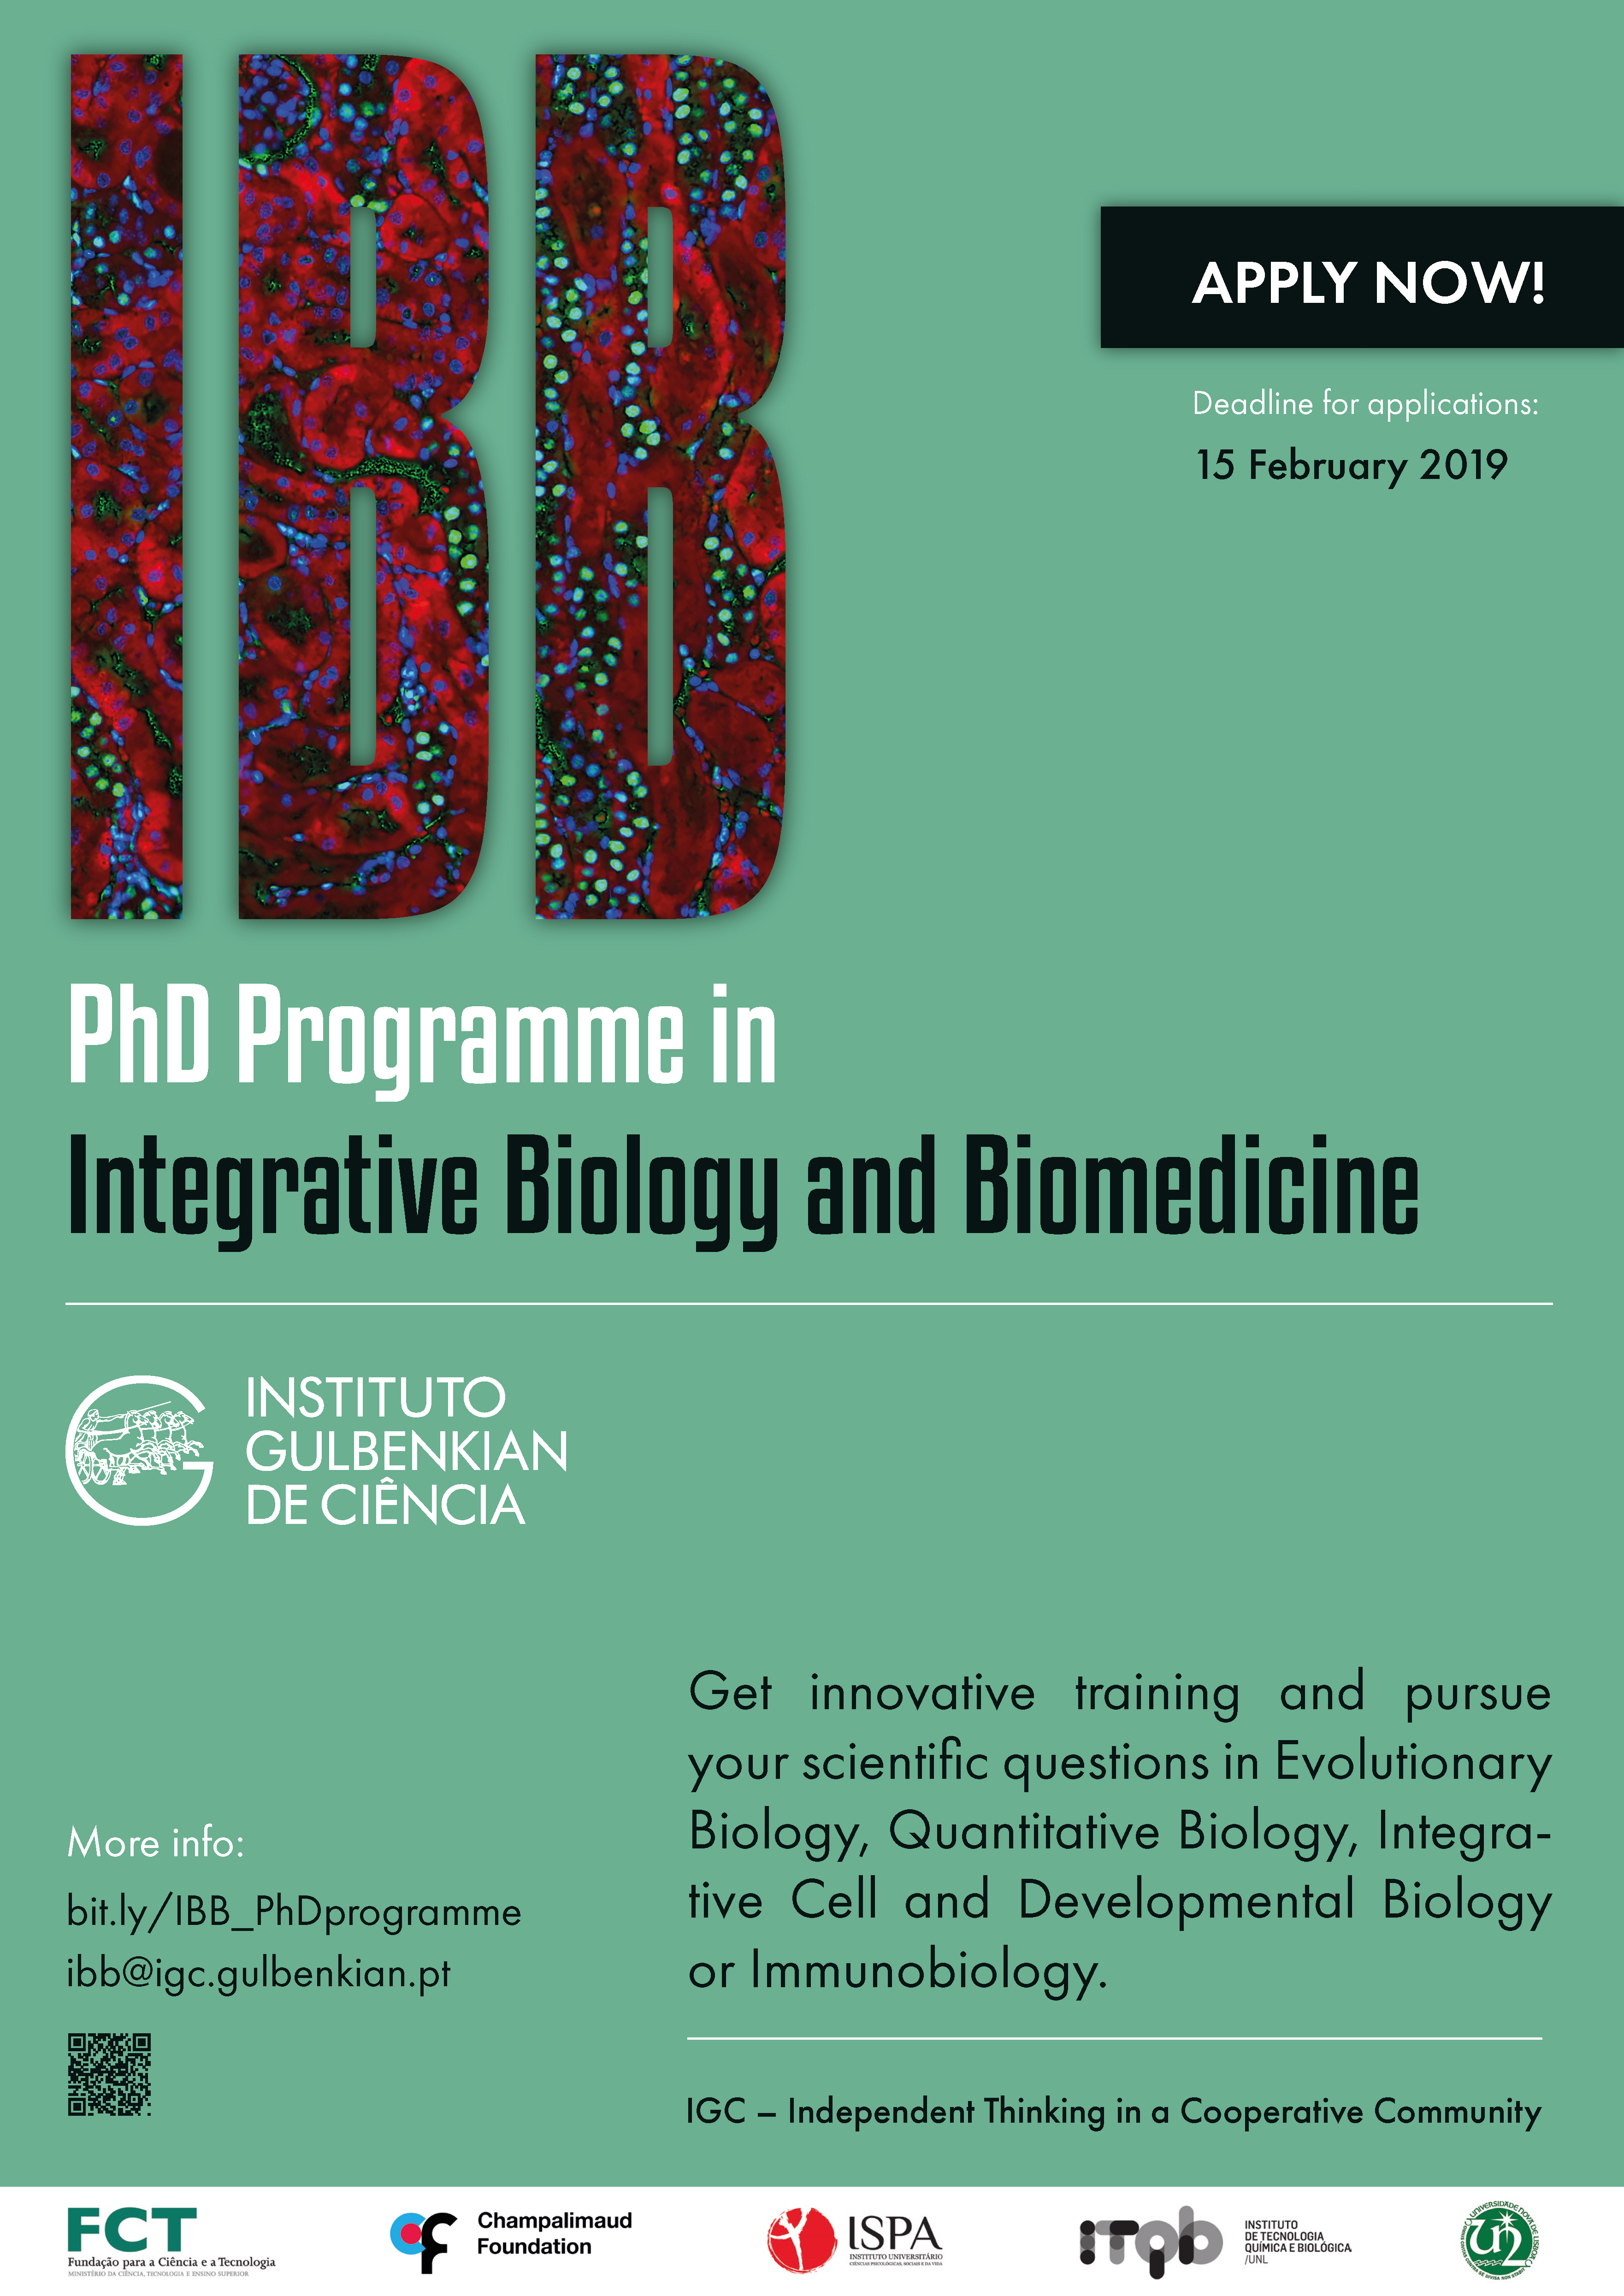 PhD Programme in Integrative Biology and Biomedicine - Instituto Gulbenkian de Ciência, Portugalia